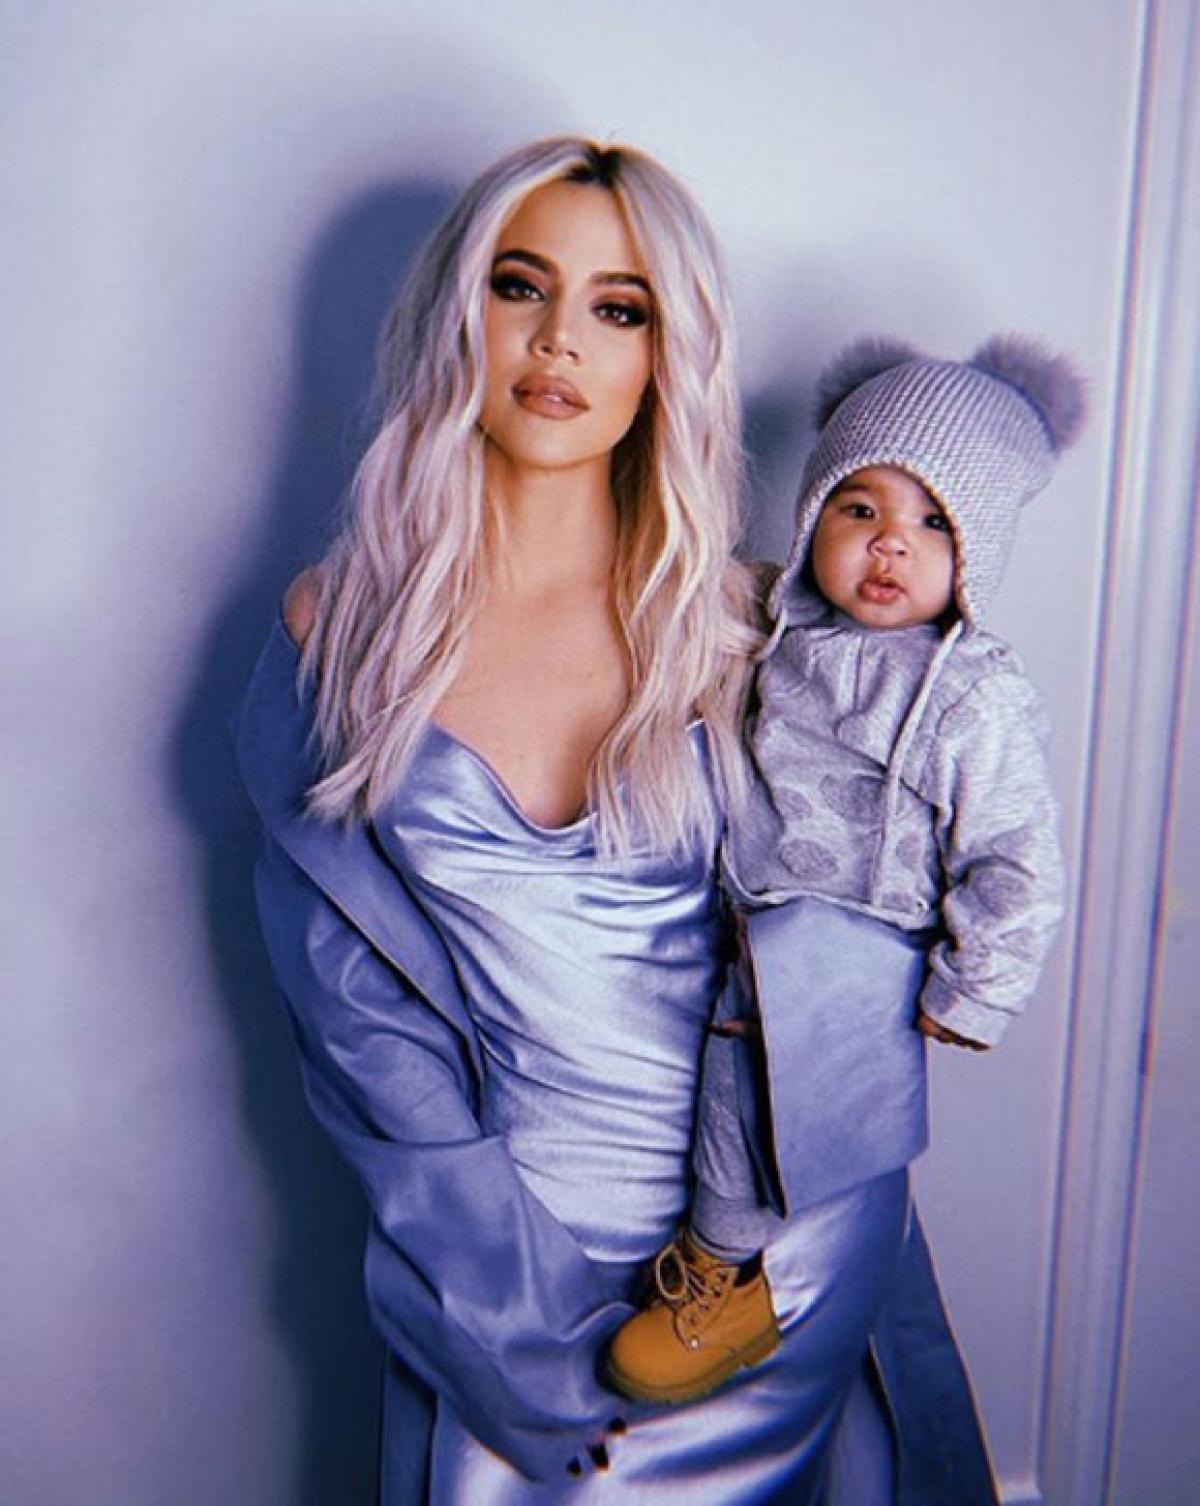 Khloé Kardashian Posts Cryptic Quote About Having the 'Nervous Breakdown' She 'Deserves'